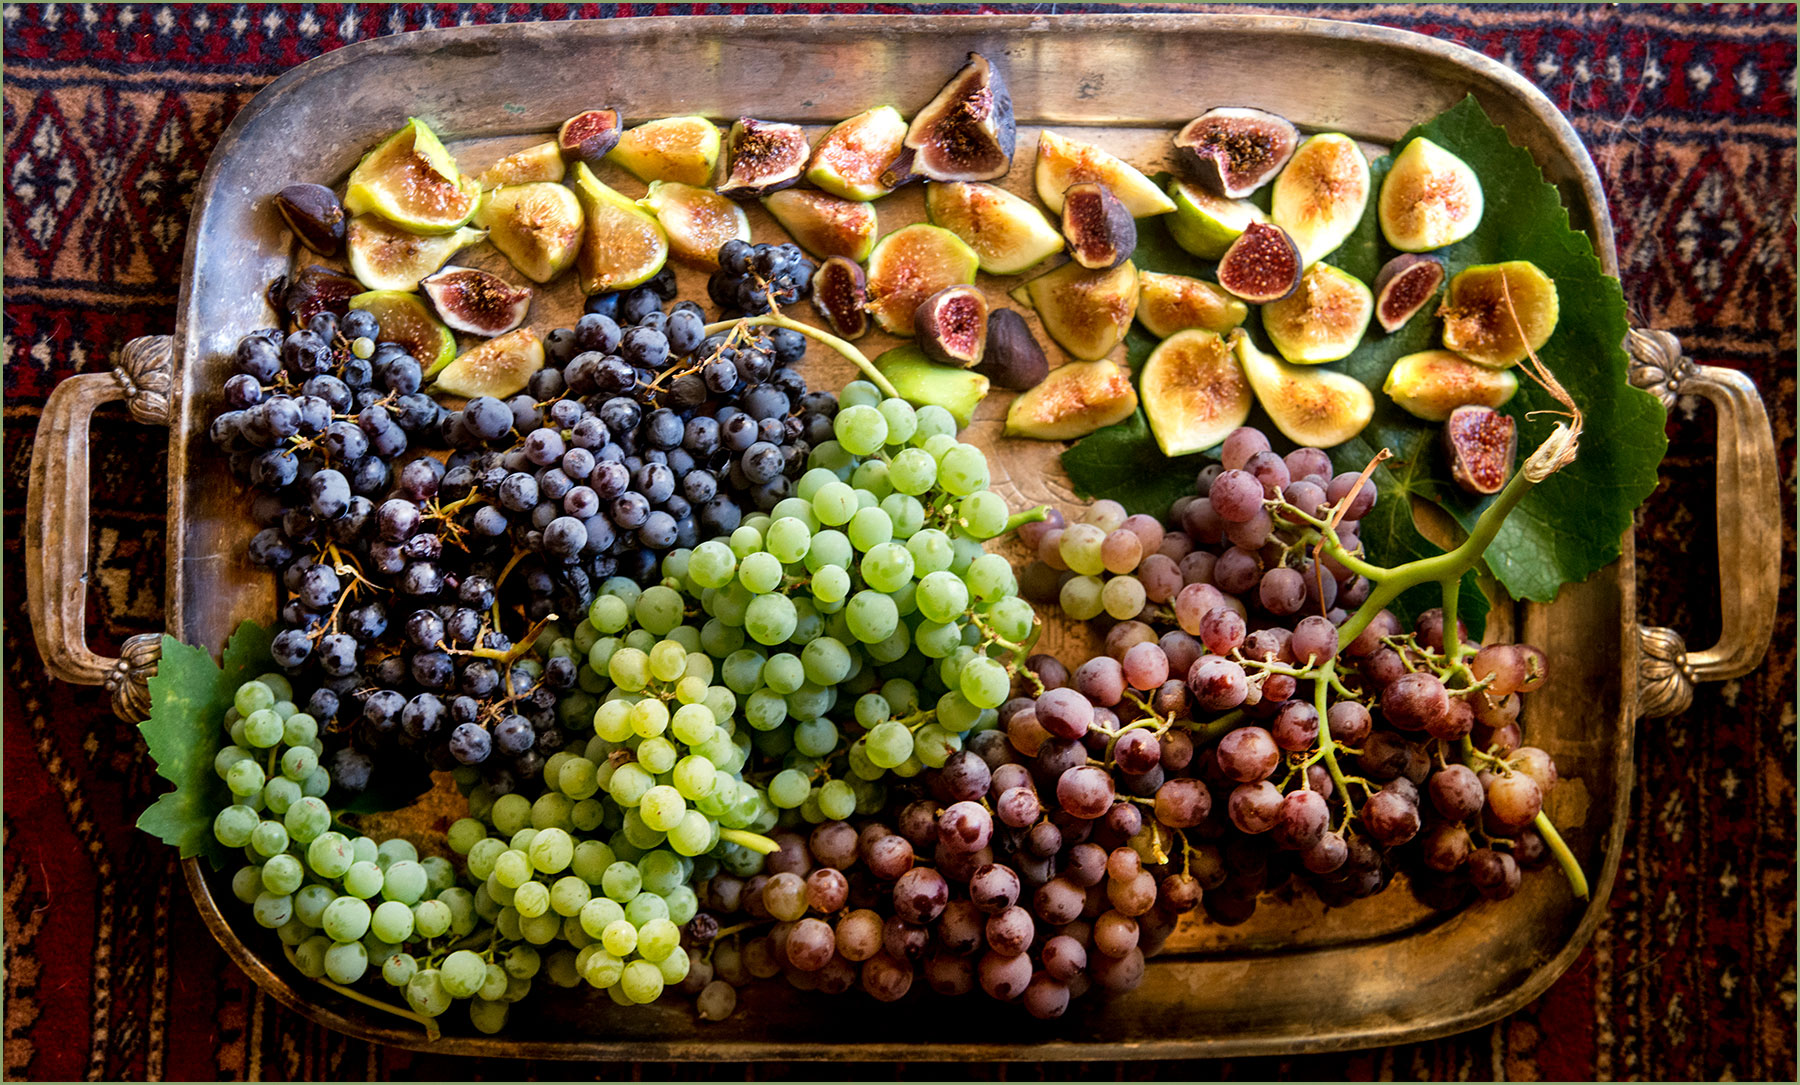 Grapes-and-figs